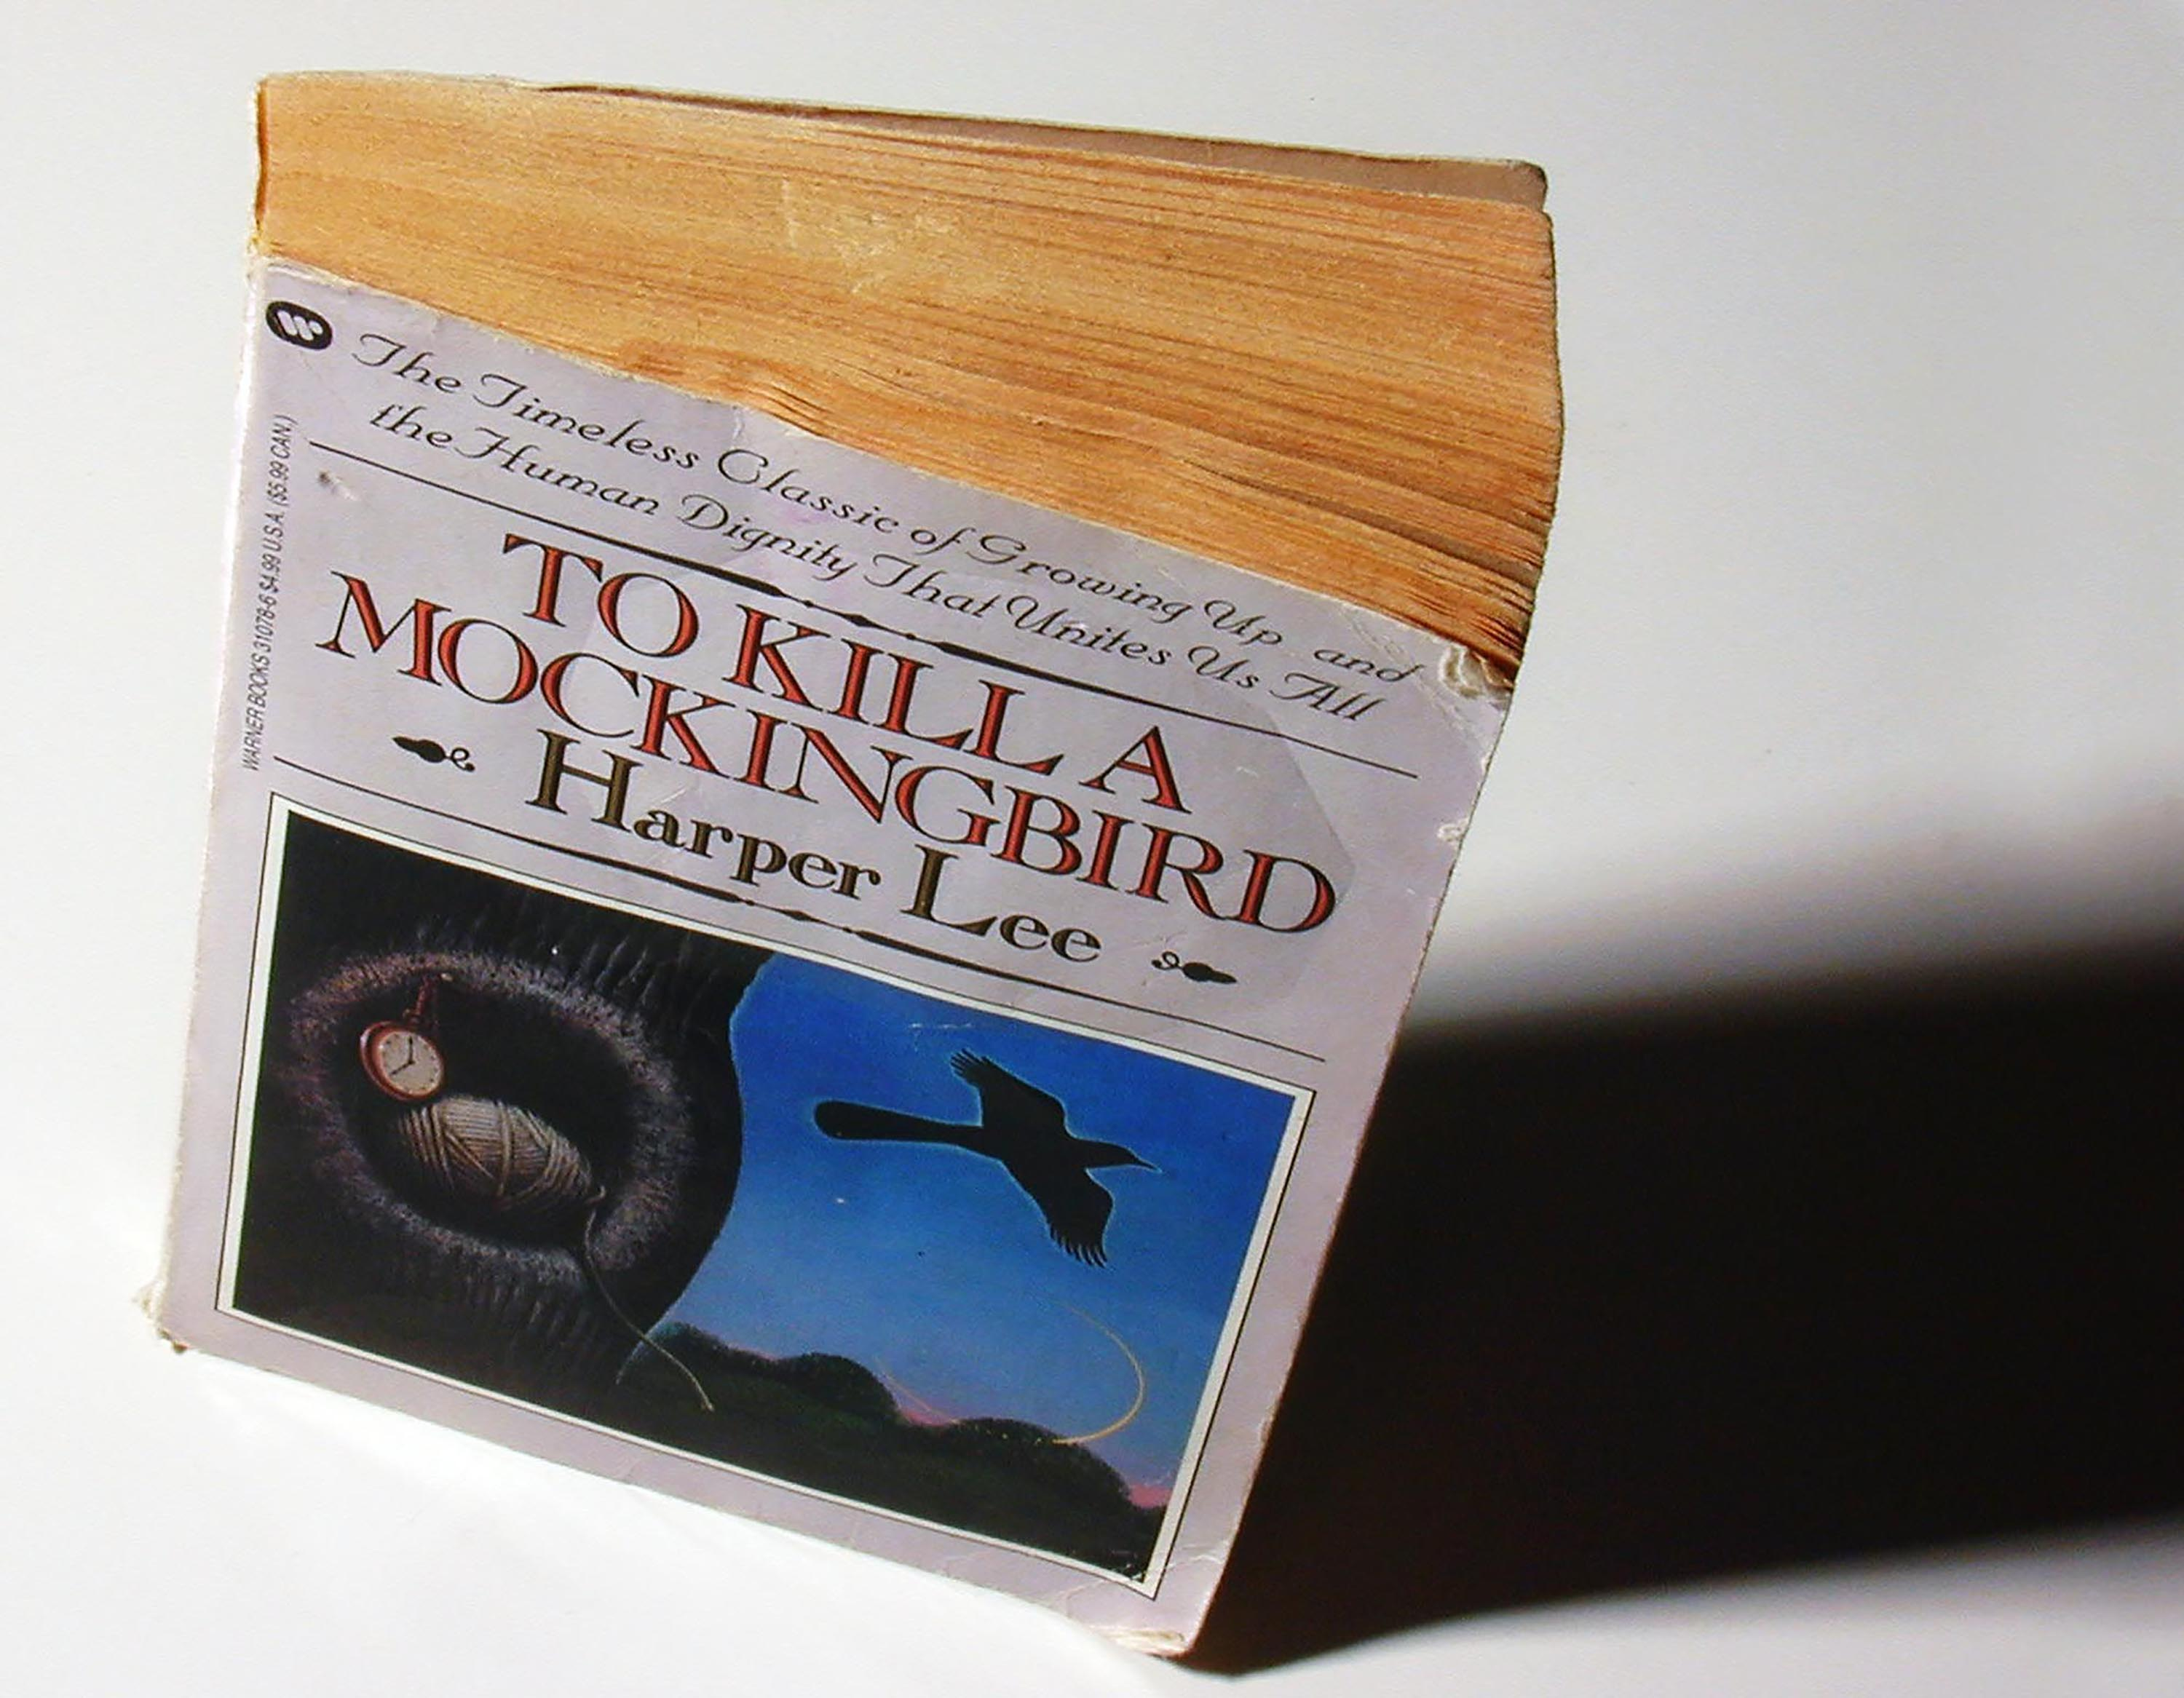 Judge cites 'To Kill a Mockingbird' in striking down migratory bird protection changes